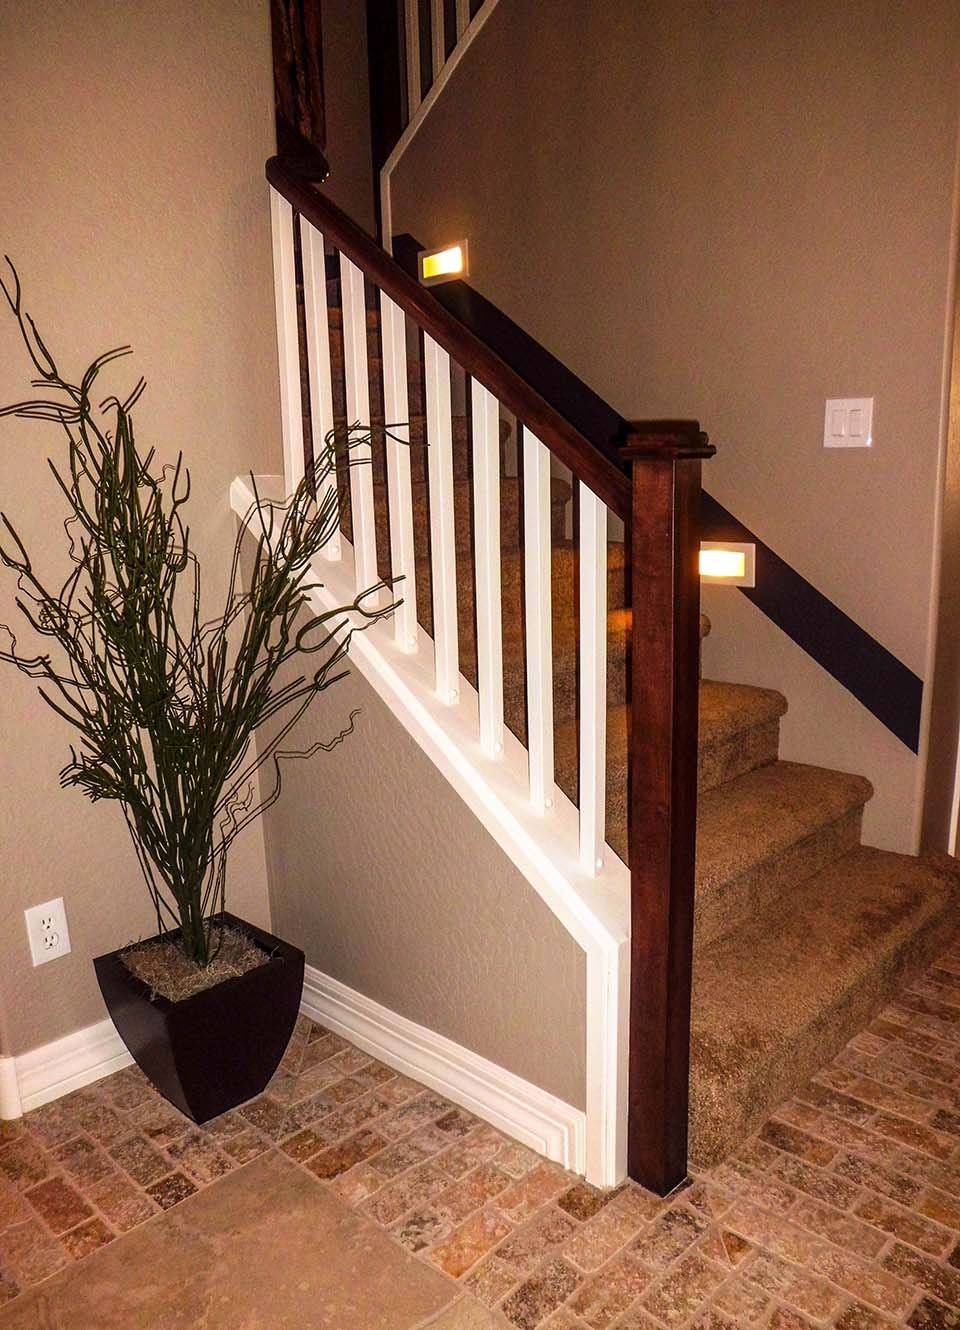 Mission Style Staircase Southern Staircase Artistic Stairs | Craftsman Style Exterior Stair Railings | Step | Black Iron | Fence | Craftsman House | Outdoor